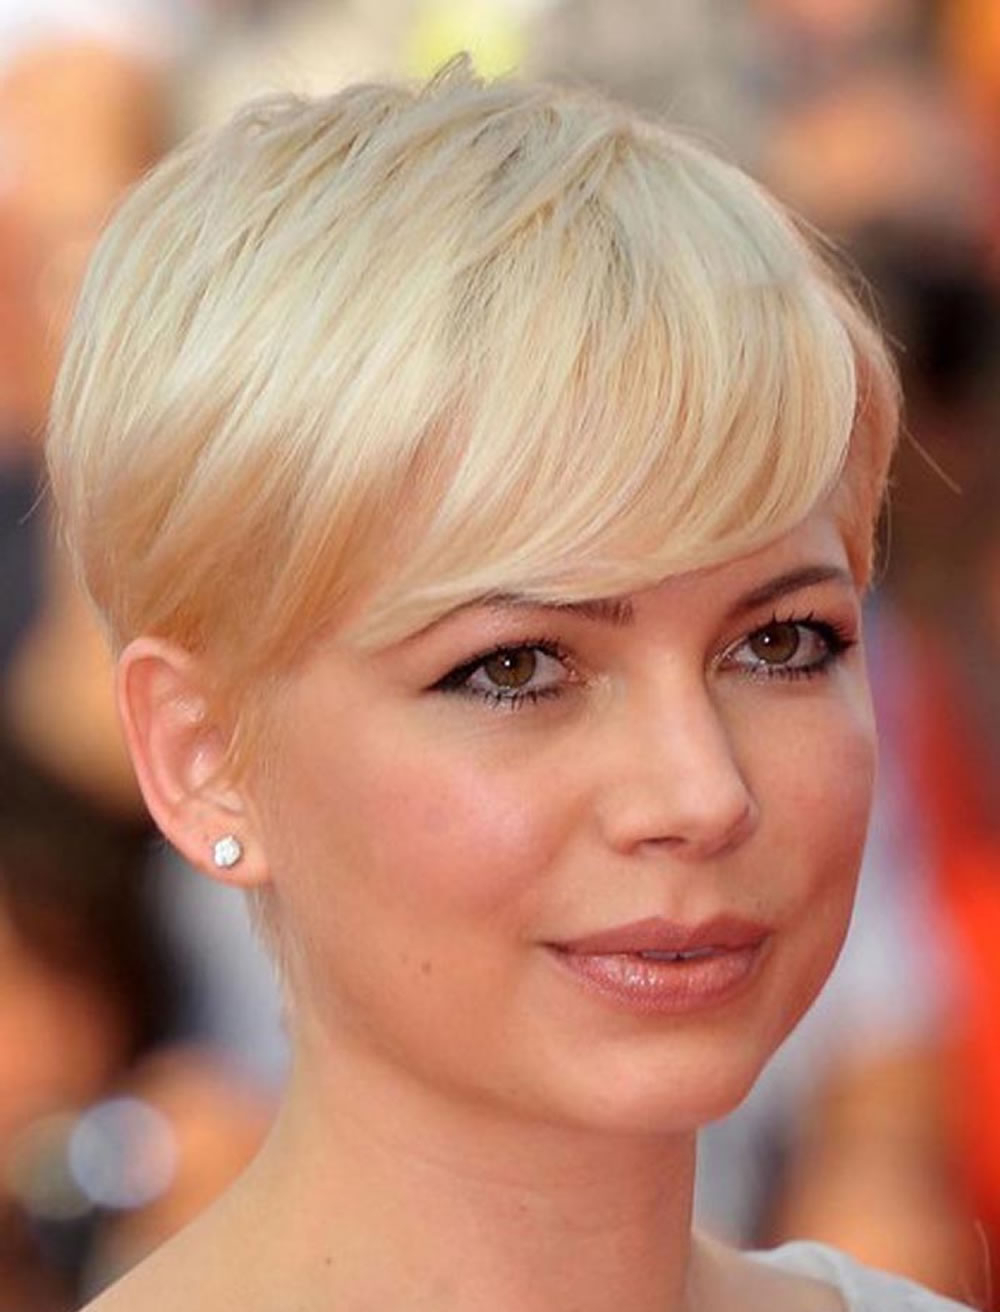 Short Haircuts For Round Face Thin Hair Ideas For 2018 – Hairstyles Within Trendy Short Haircuts For Round Faces (View 10 of 25)